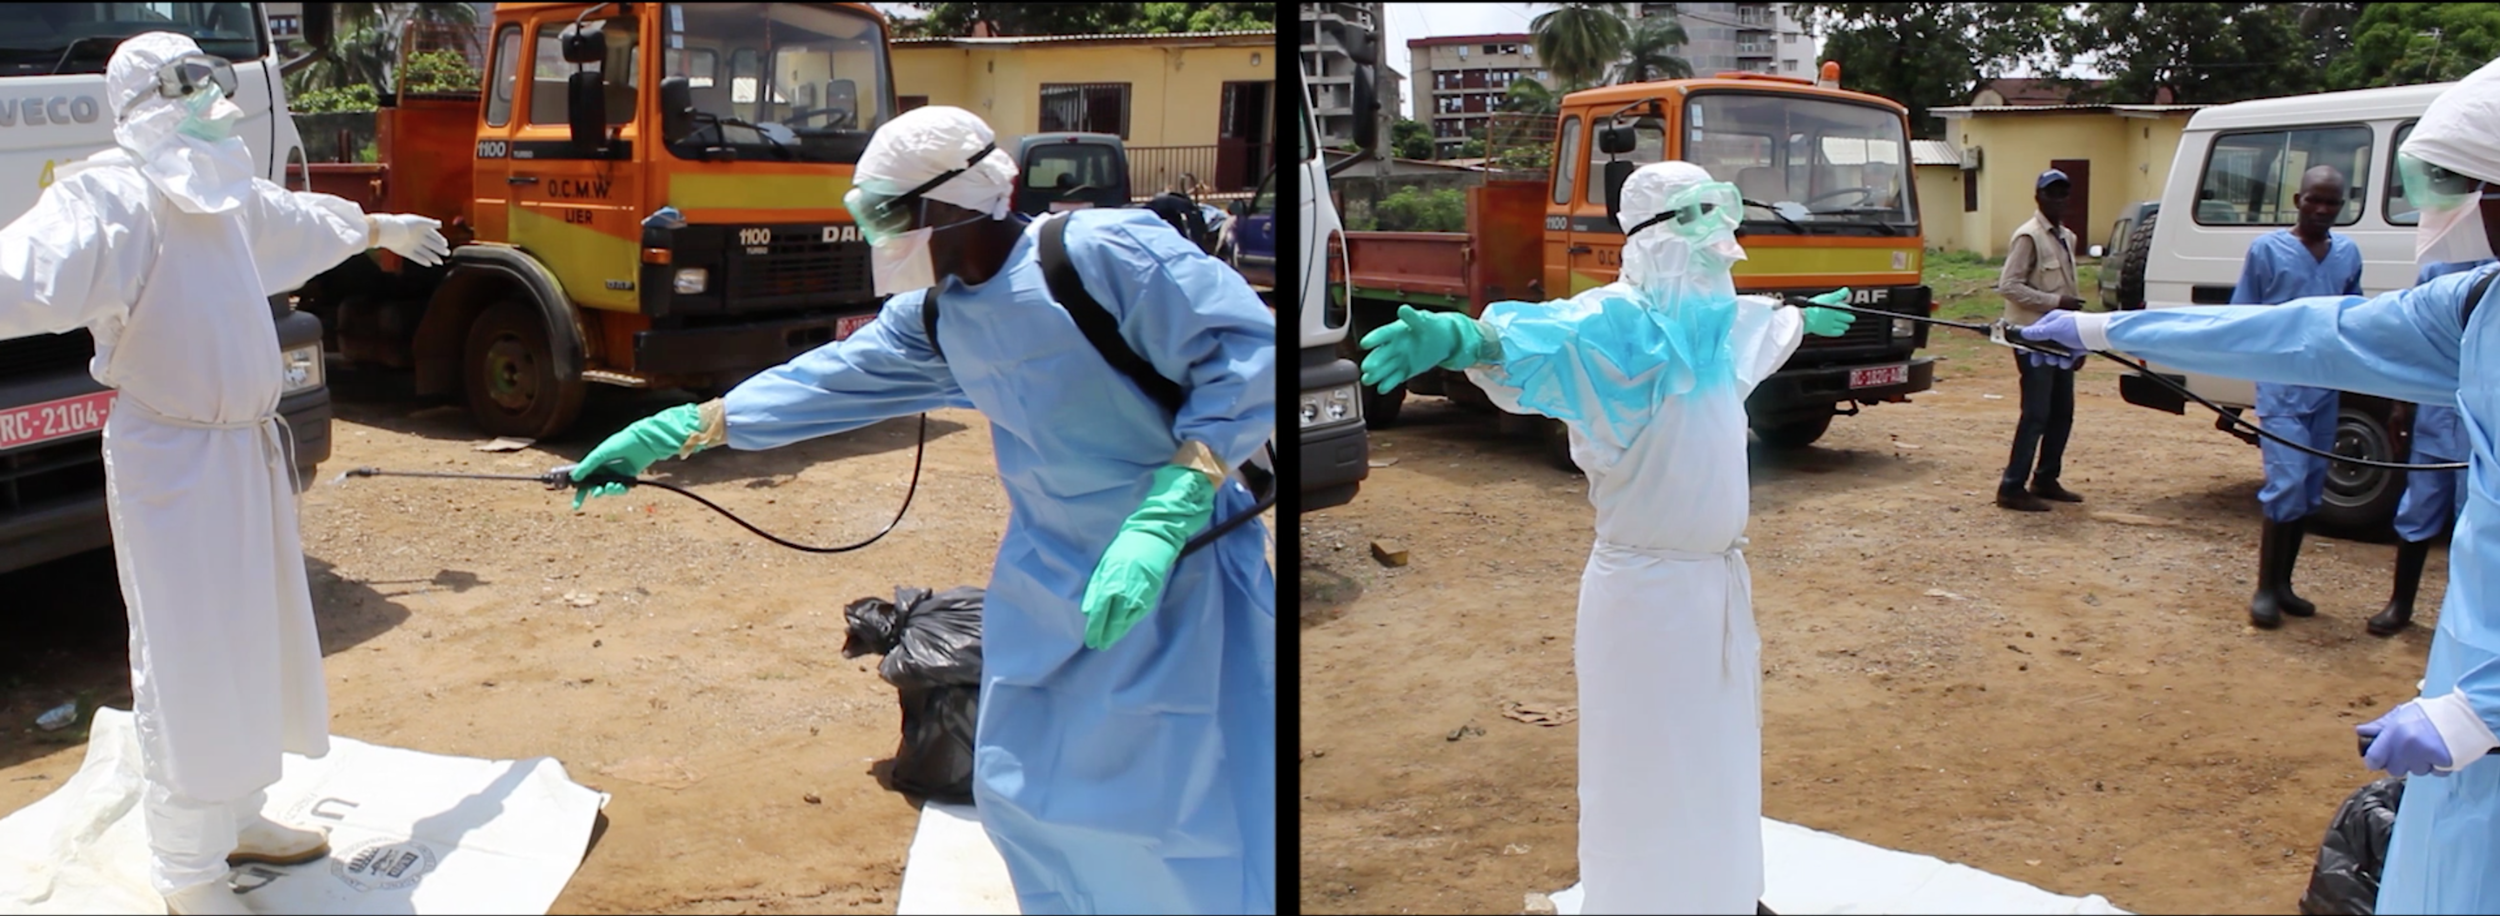 Doffing procedure using bleach alone (left) and bleach with Highlight (right) in Guinea with International Medical Corps. June 2016.